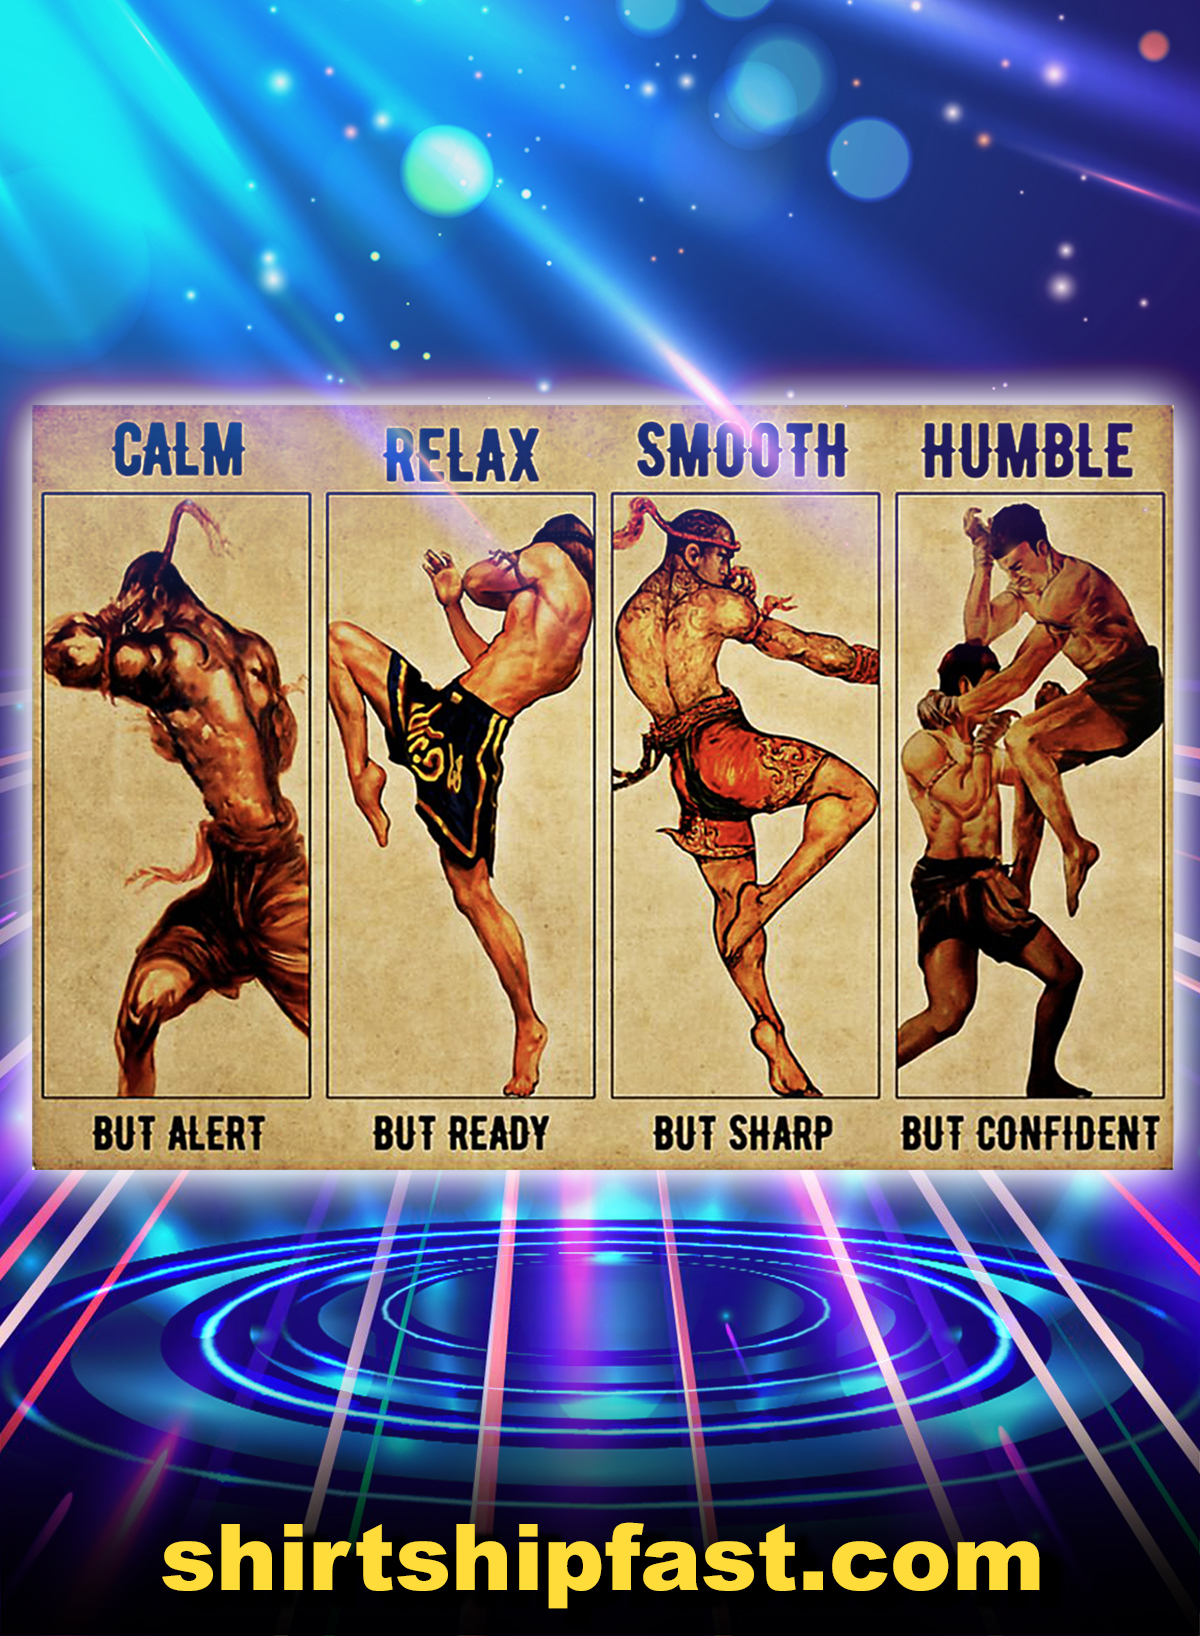 Muay thai calm relax smooth humble poster - A1